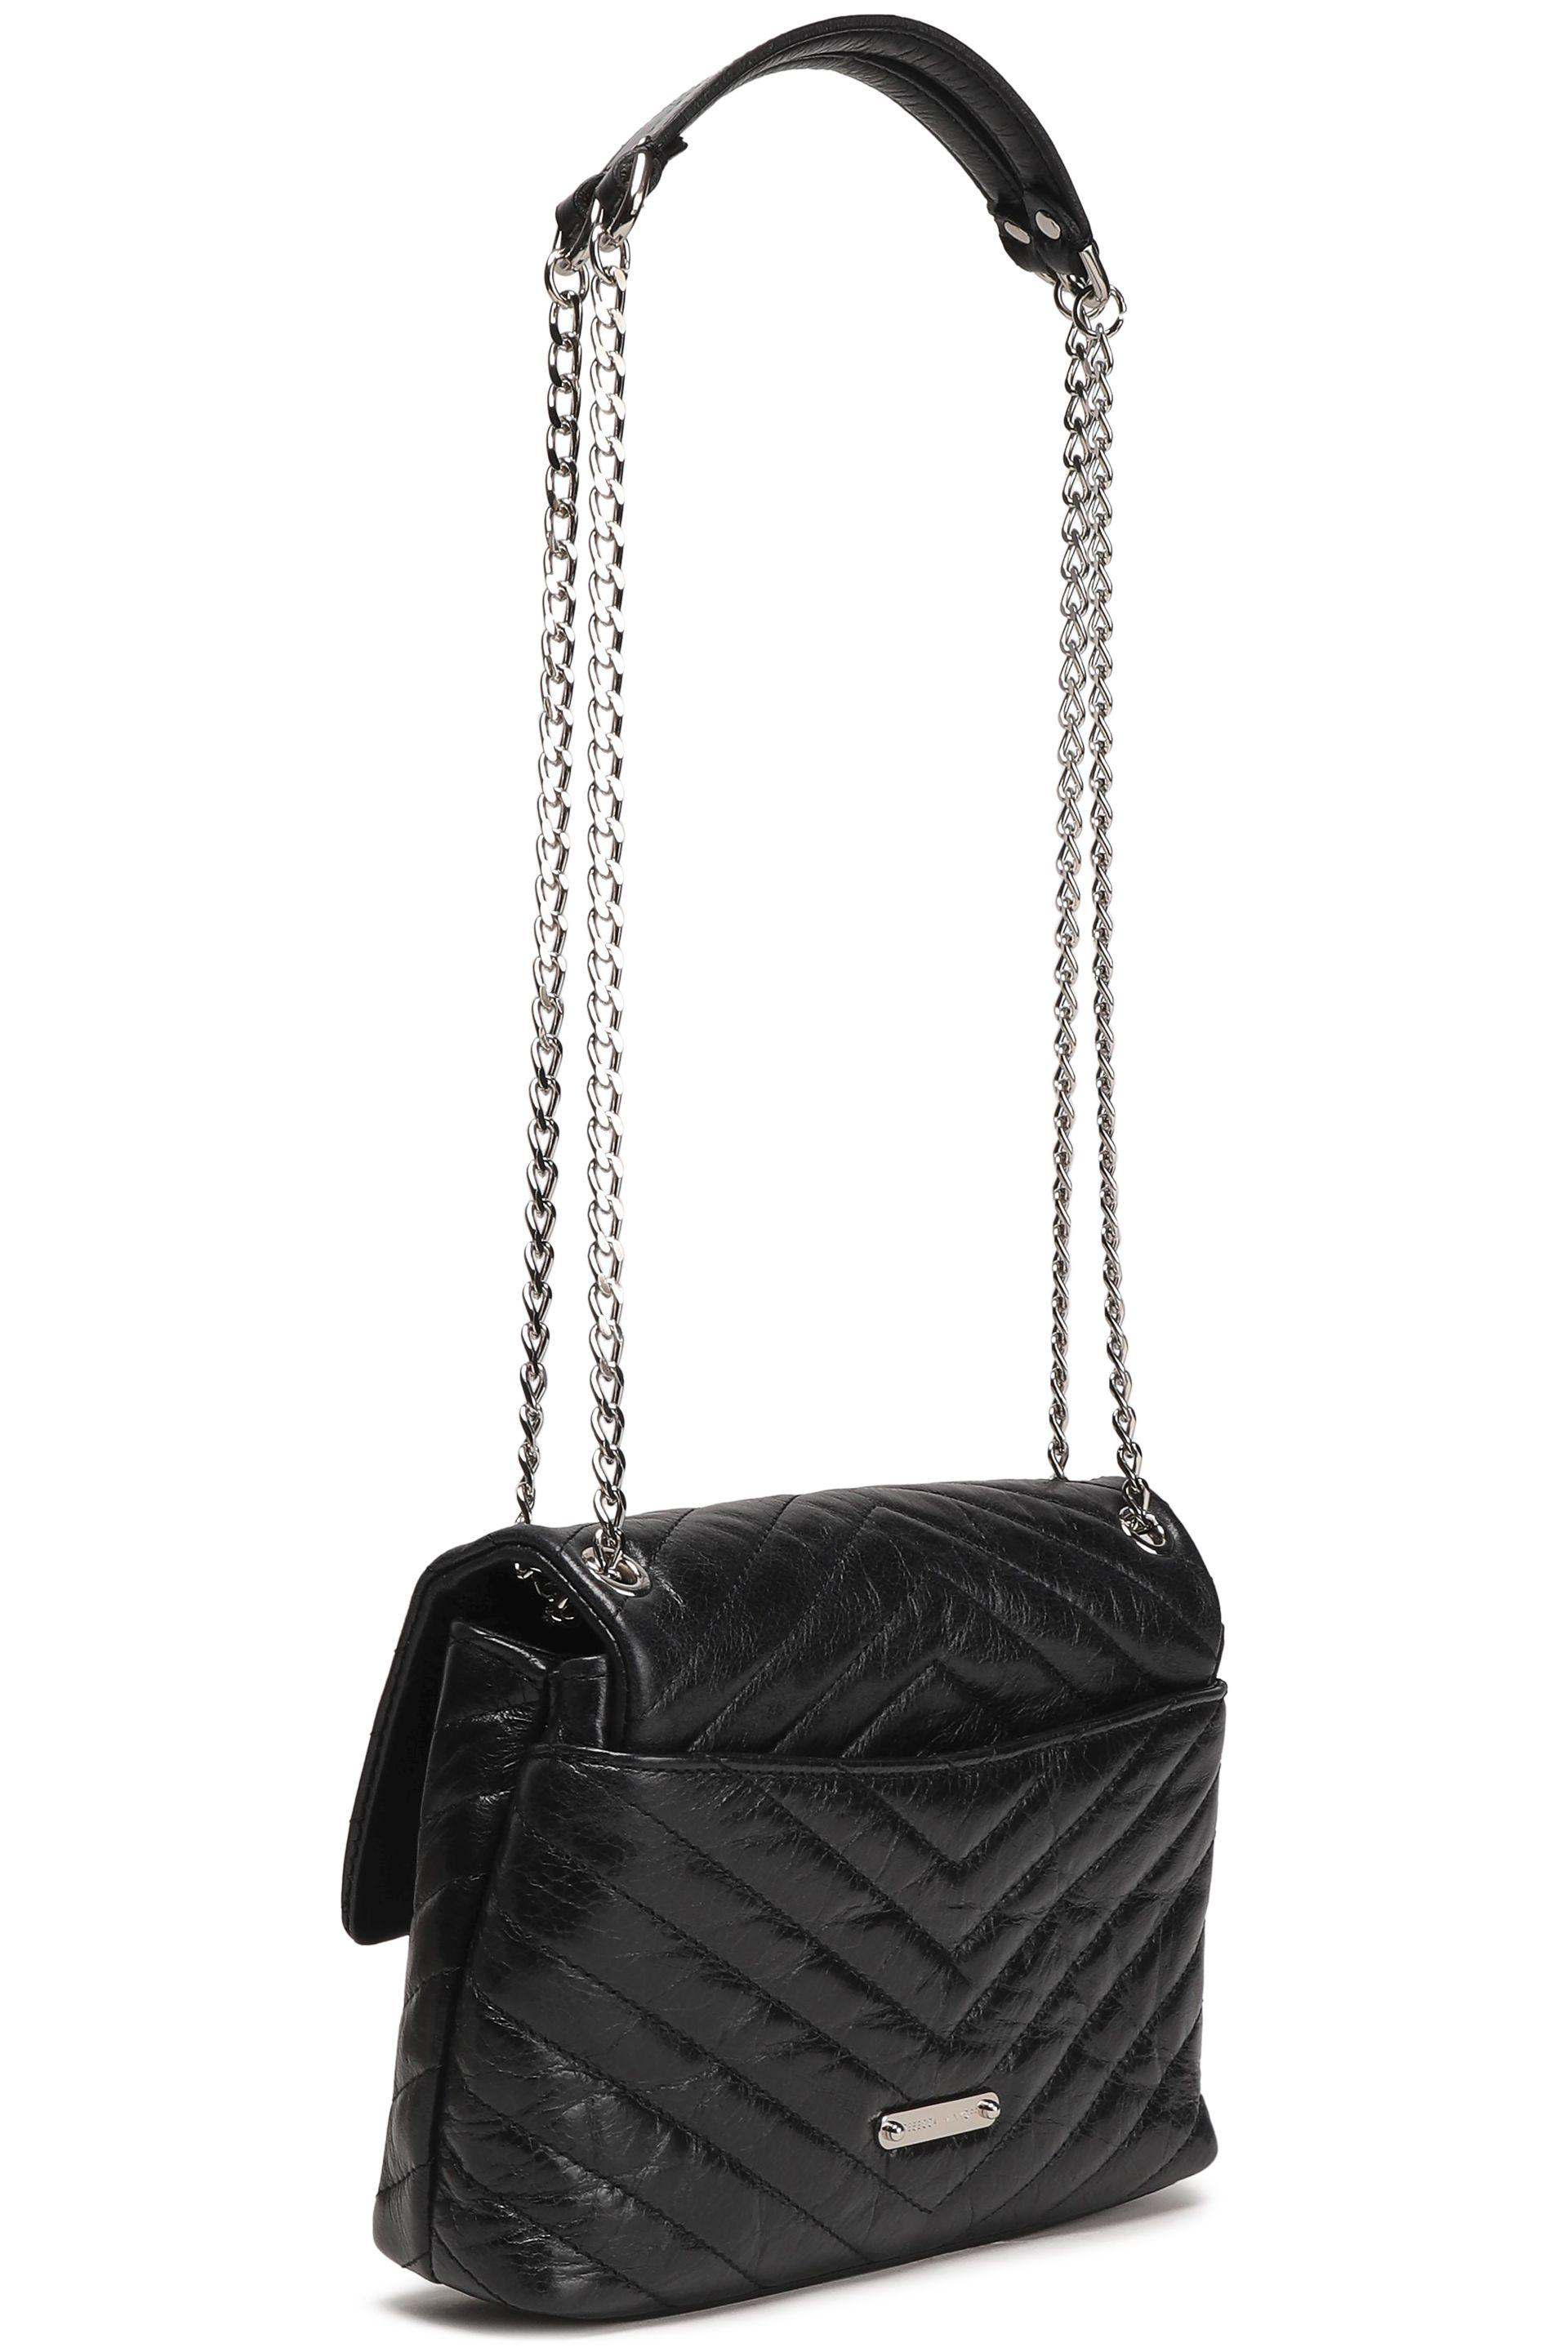 b14d2a1279881 Rebecca Minkoff - Woman Chain-trimmed Quilted Leather Shoulder Bag Black -  Lyst. View fullscreen